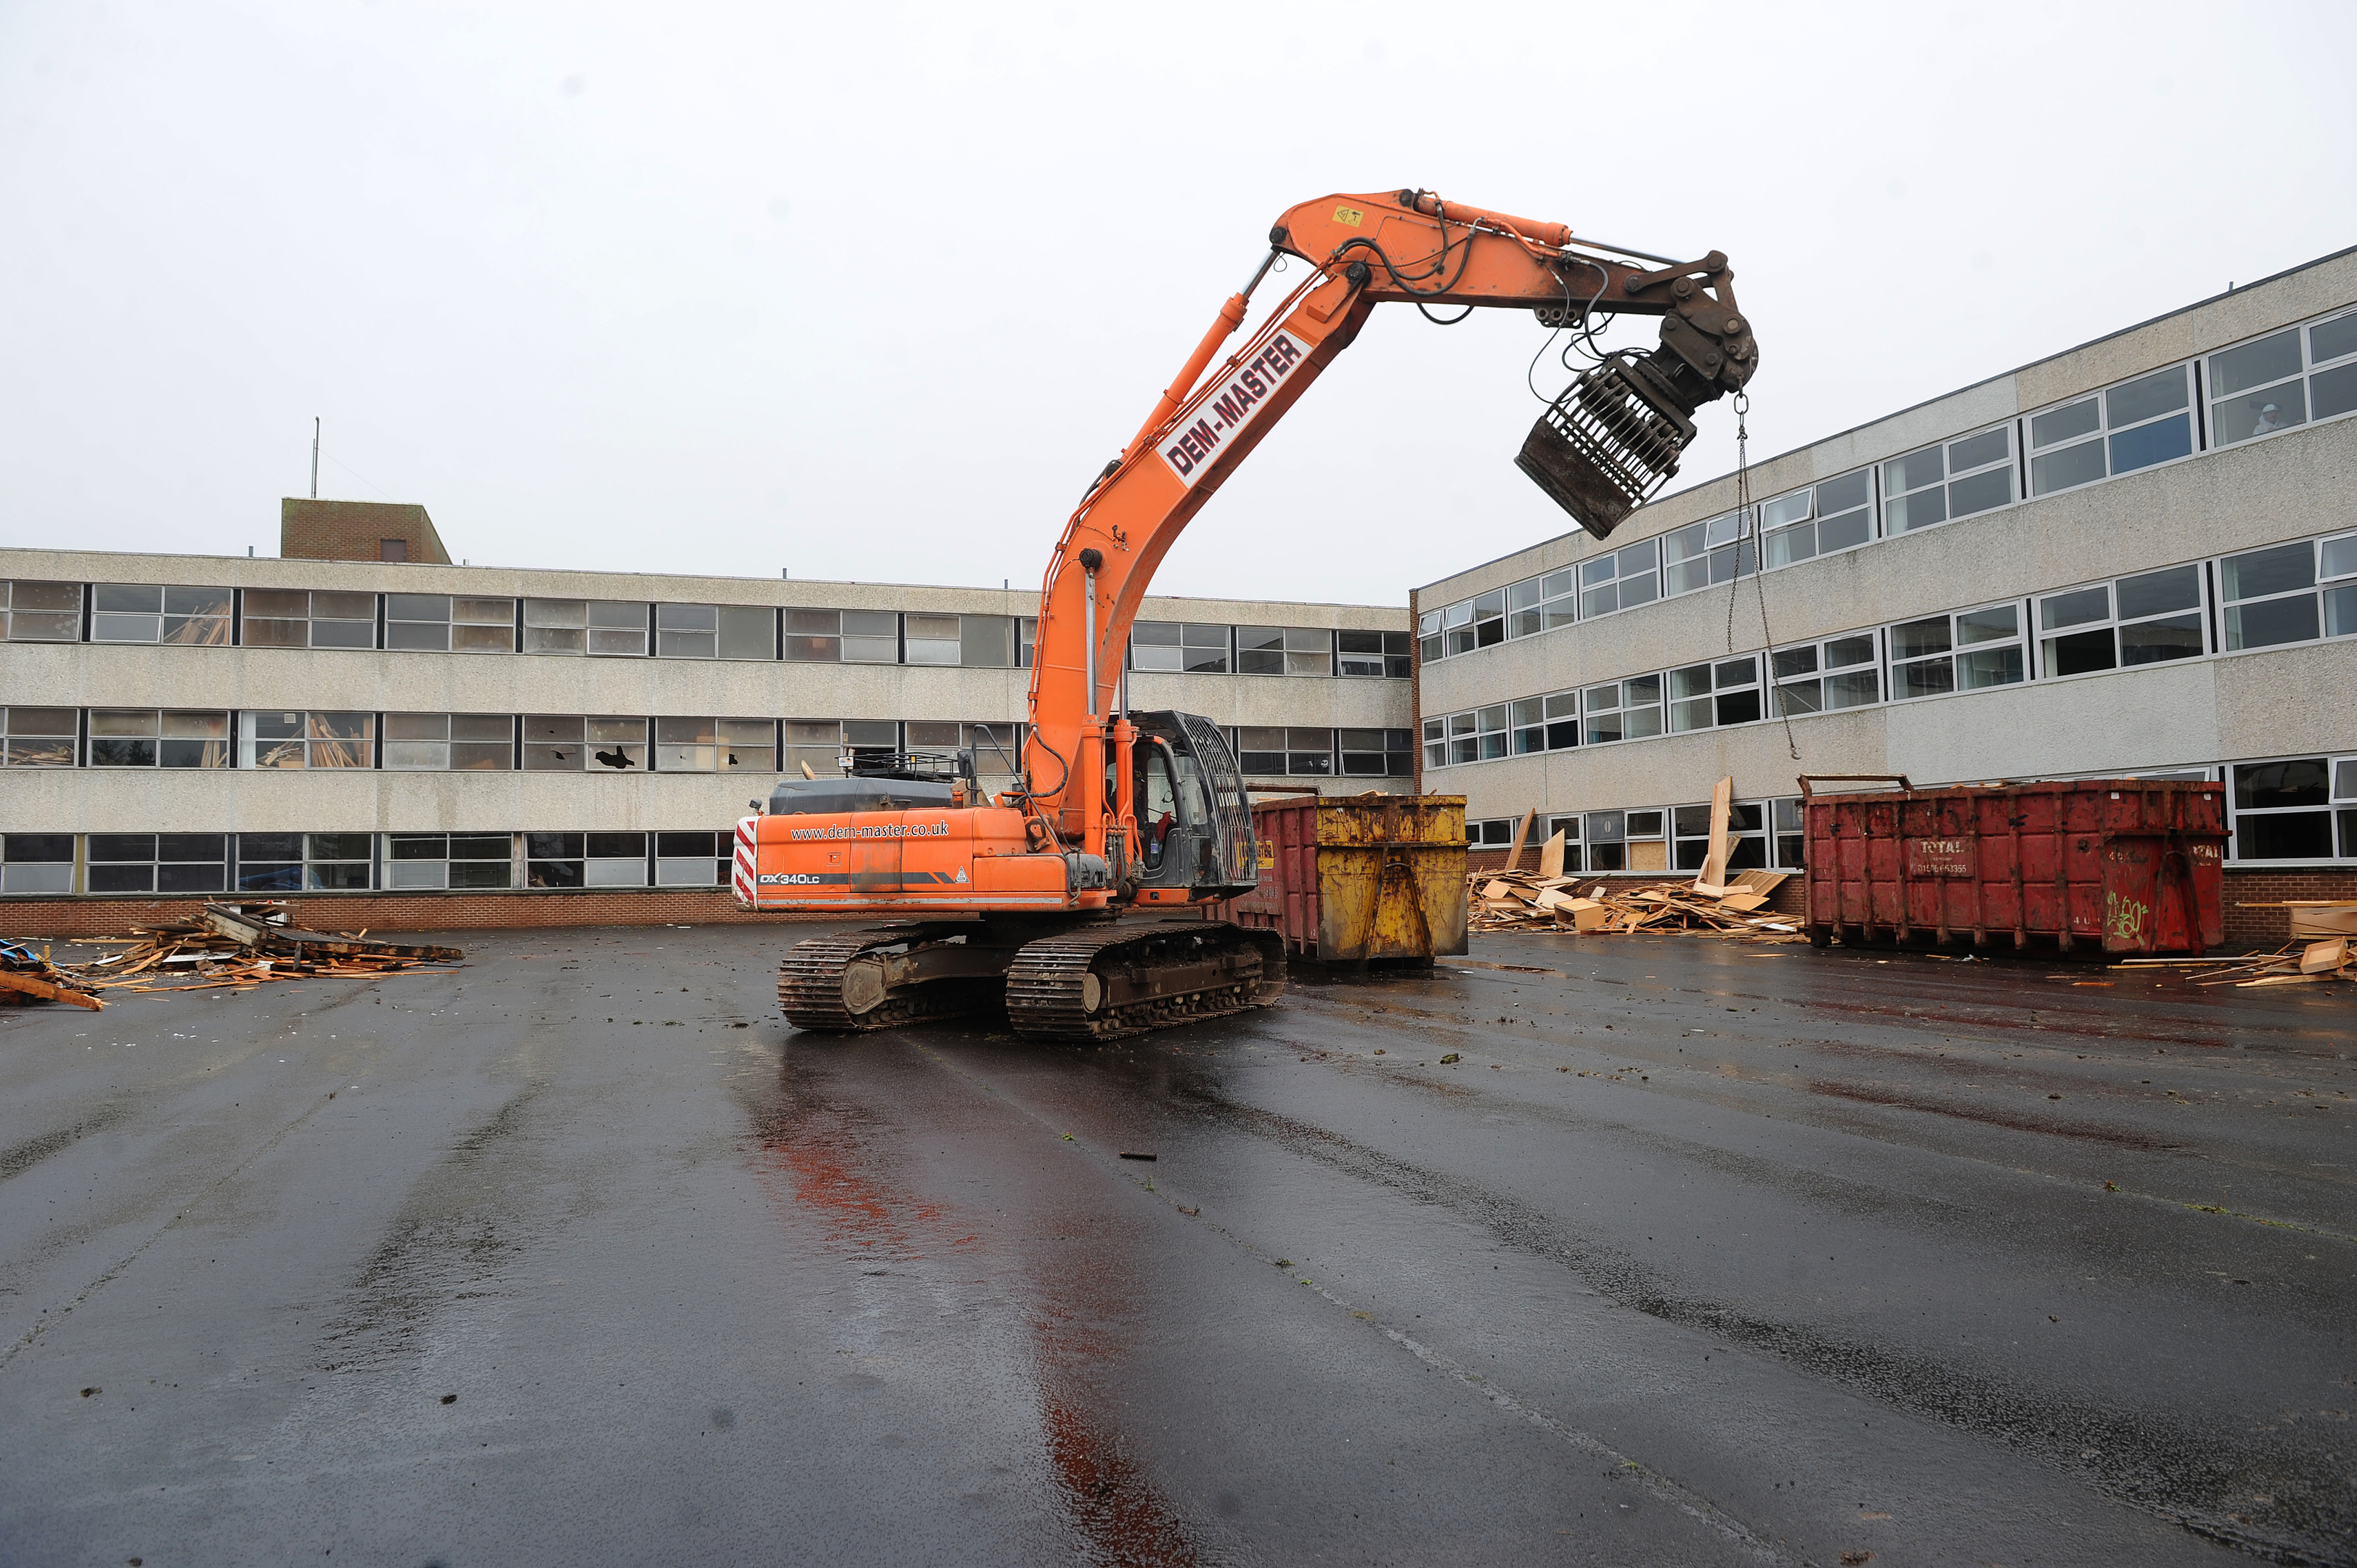 Demolition machinery hard at work on the site of the former school.